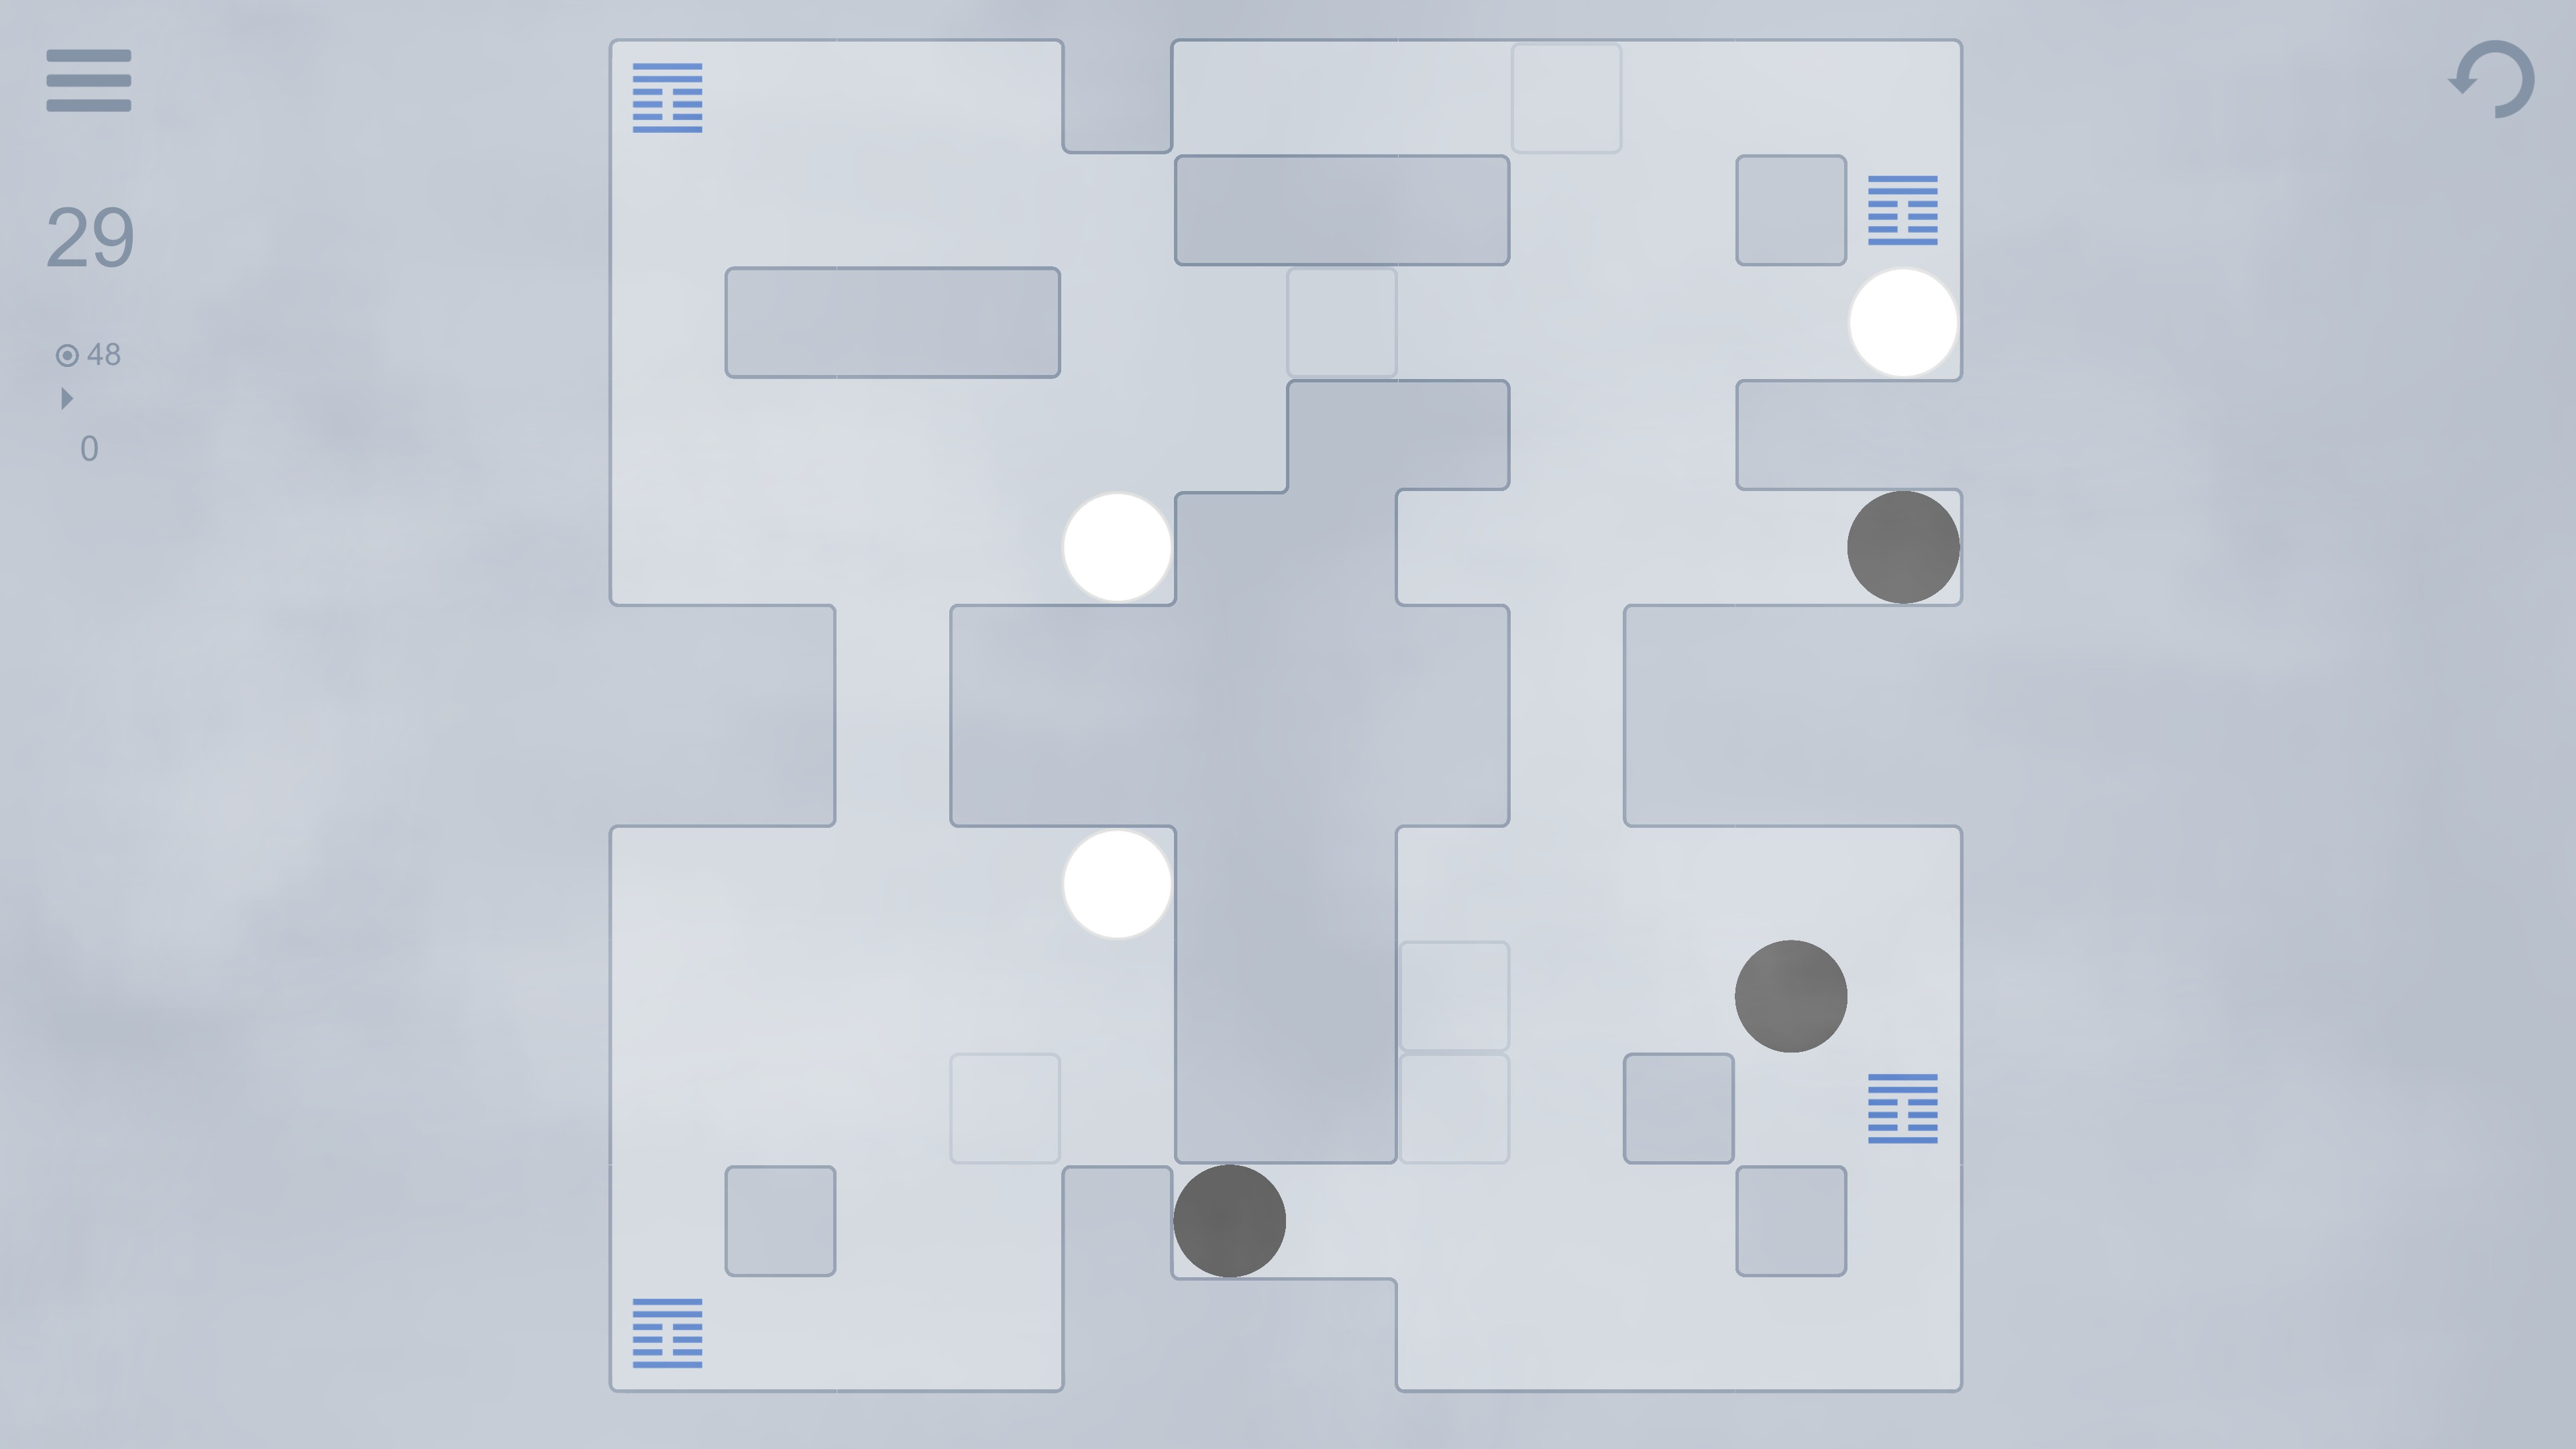 Yin Yang. Level 29 with 3 pieces and toggleable walls. The minimum move count is 48.